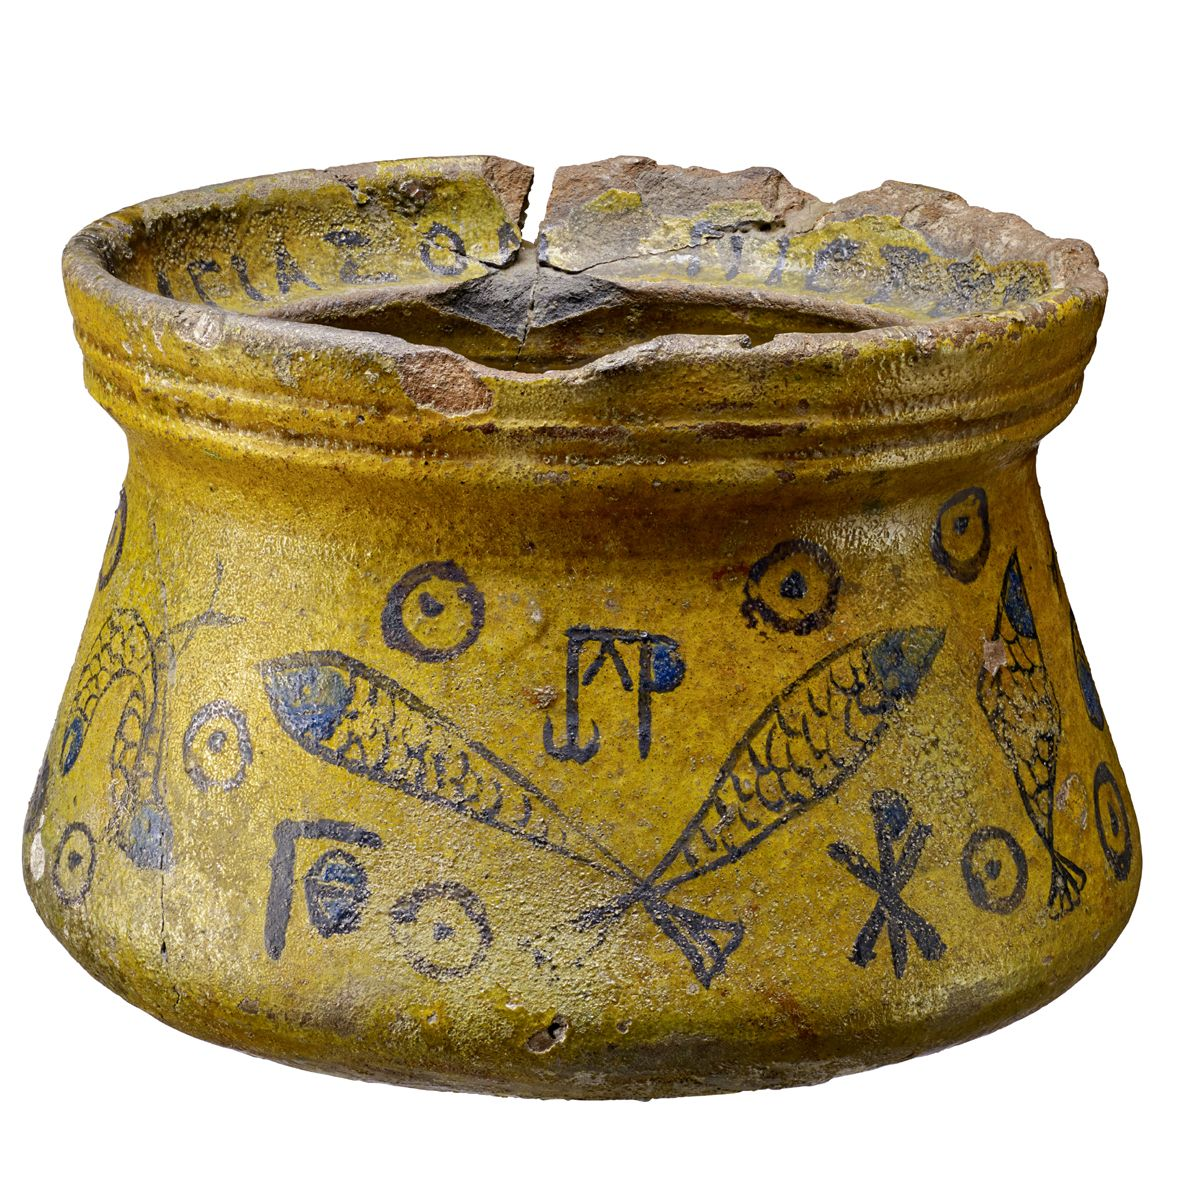 A Ceramic Vessel Made In Syria Between 800 And 1000 Decorated With